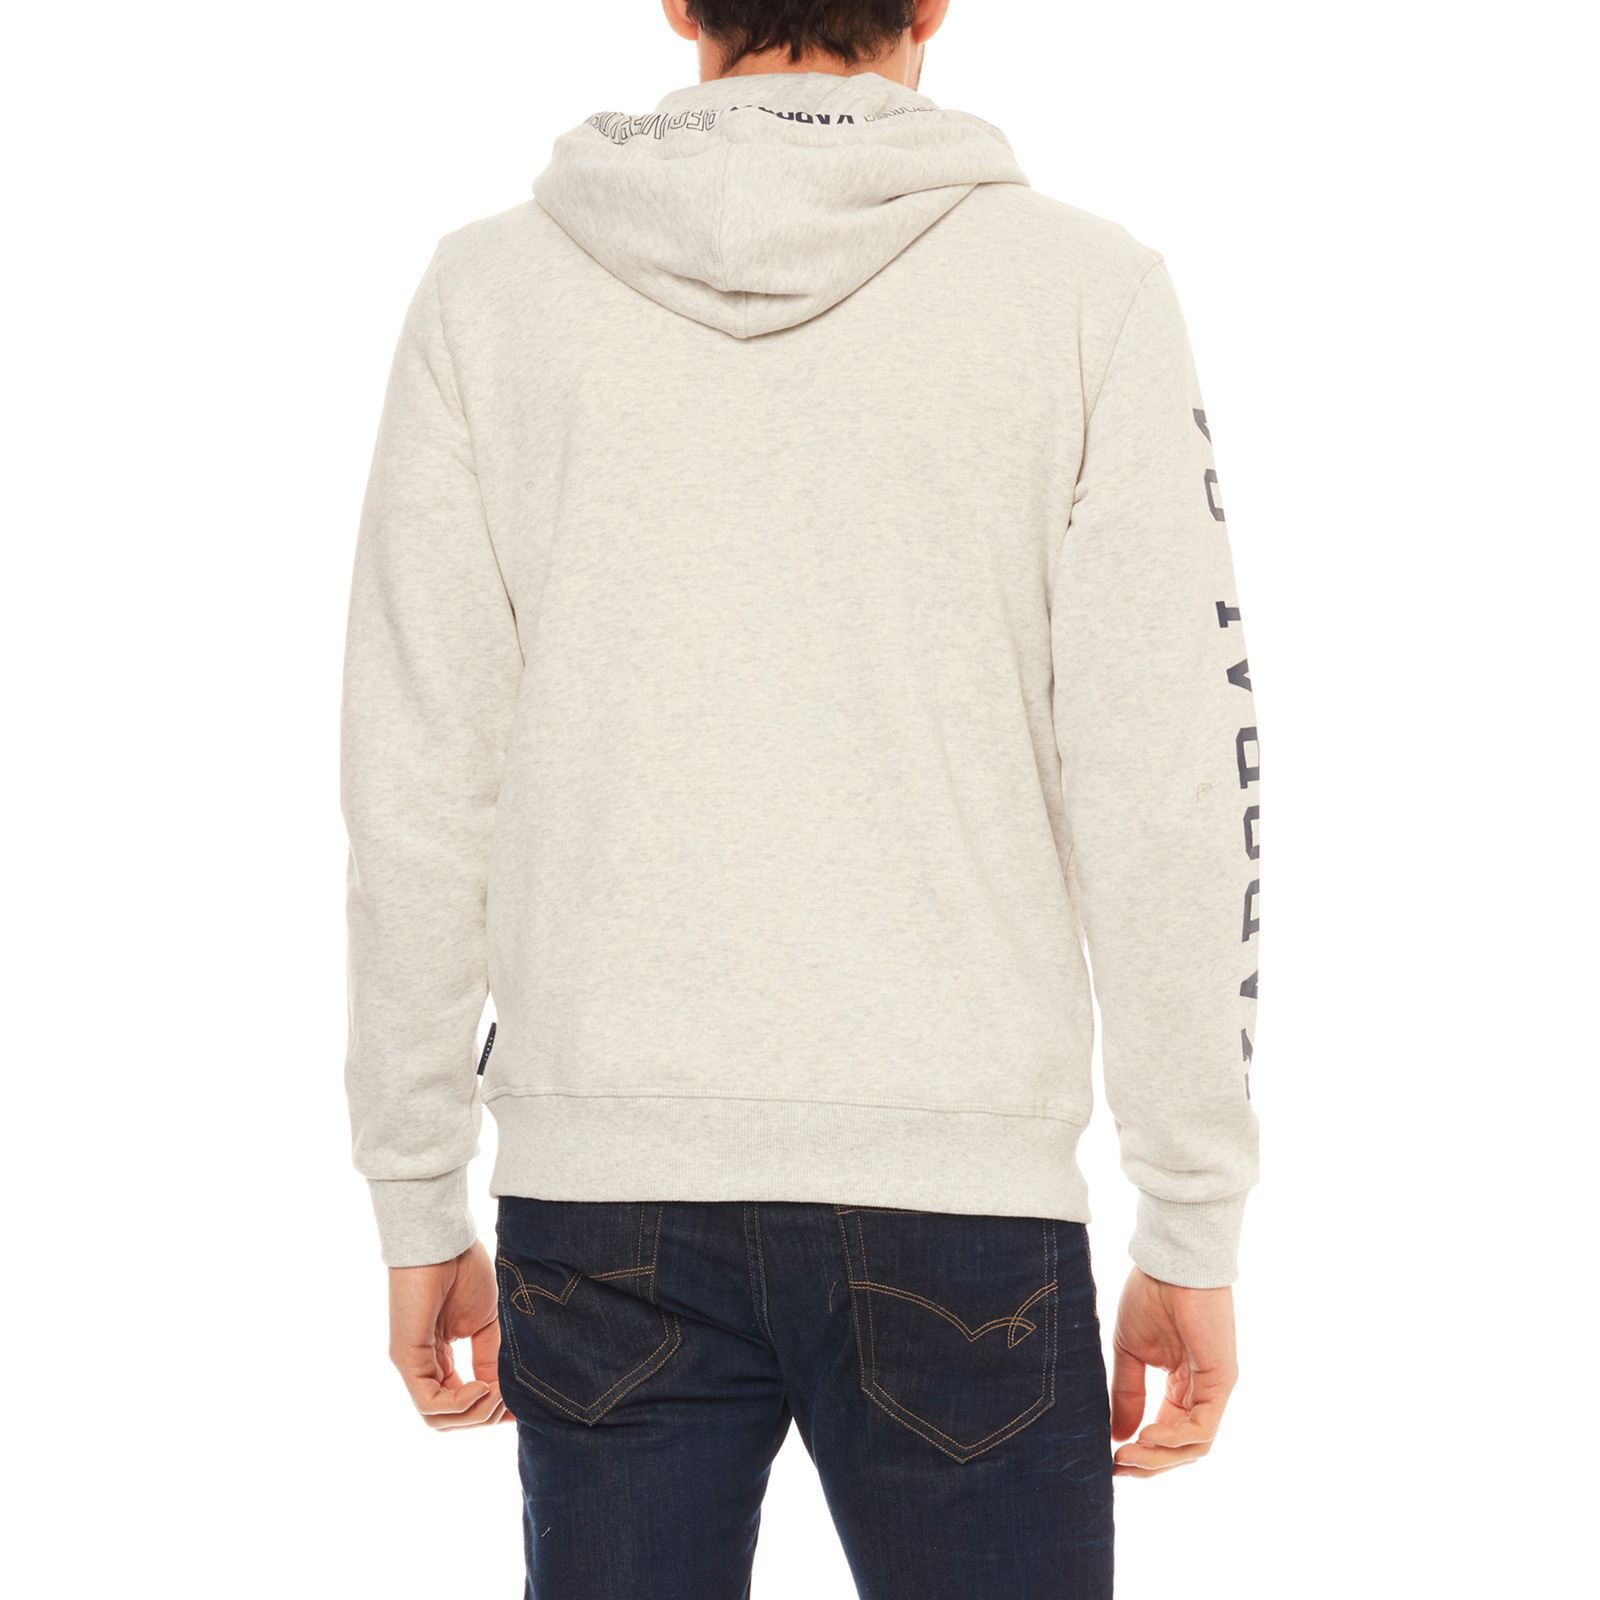 Kaporal Clair Capuche V Homme MialSweat a Gris YbI6mfgyv7